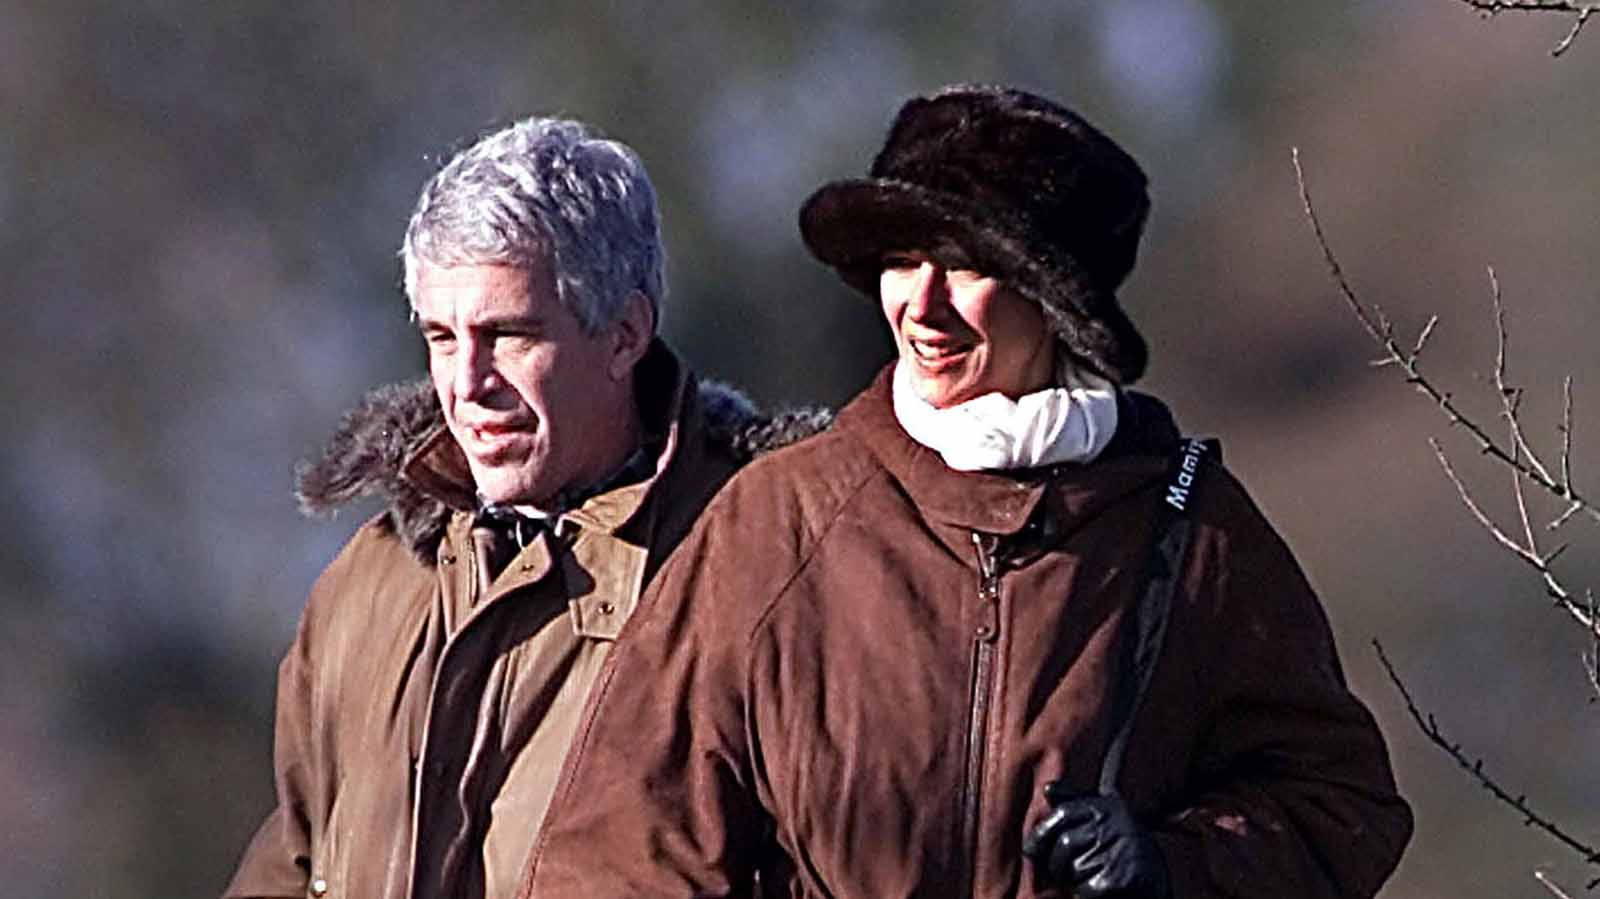 A judge made a statement implying Ghislaine Maxwell is a victim of Jeffrey Epstein. But how true is her statement?